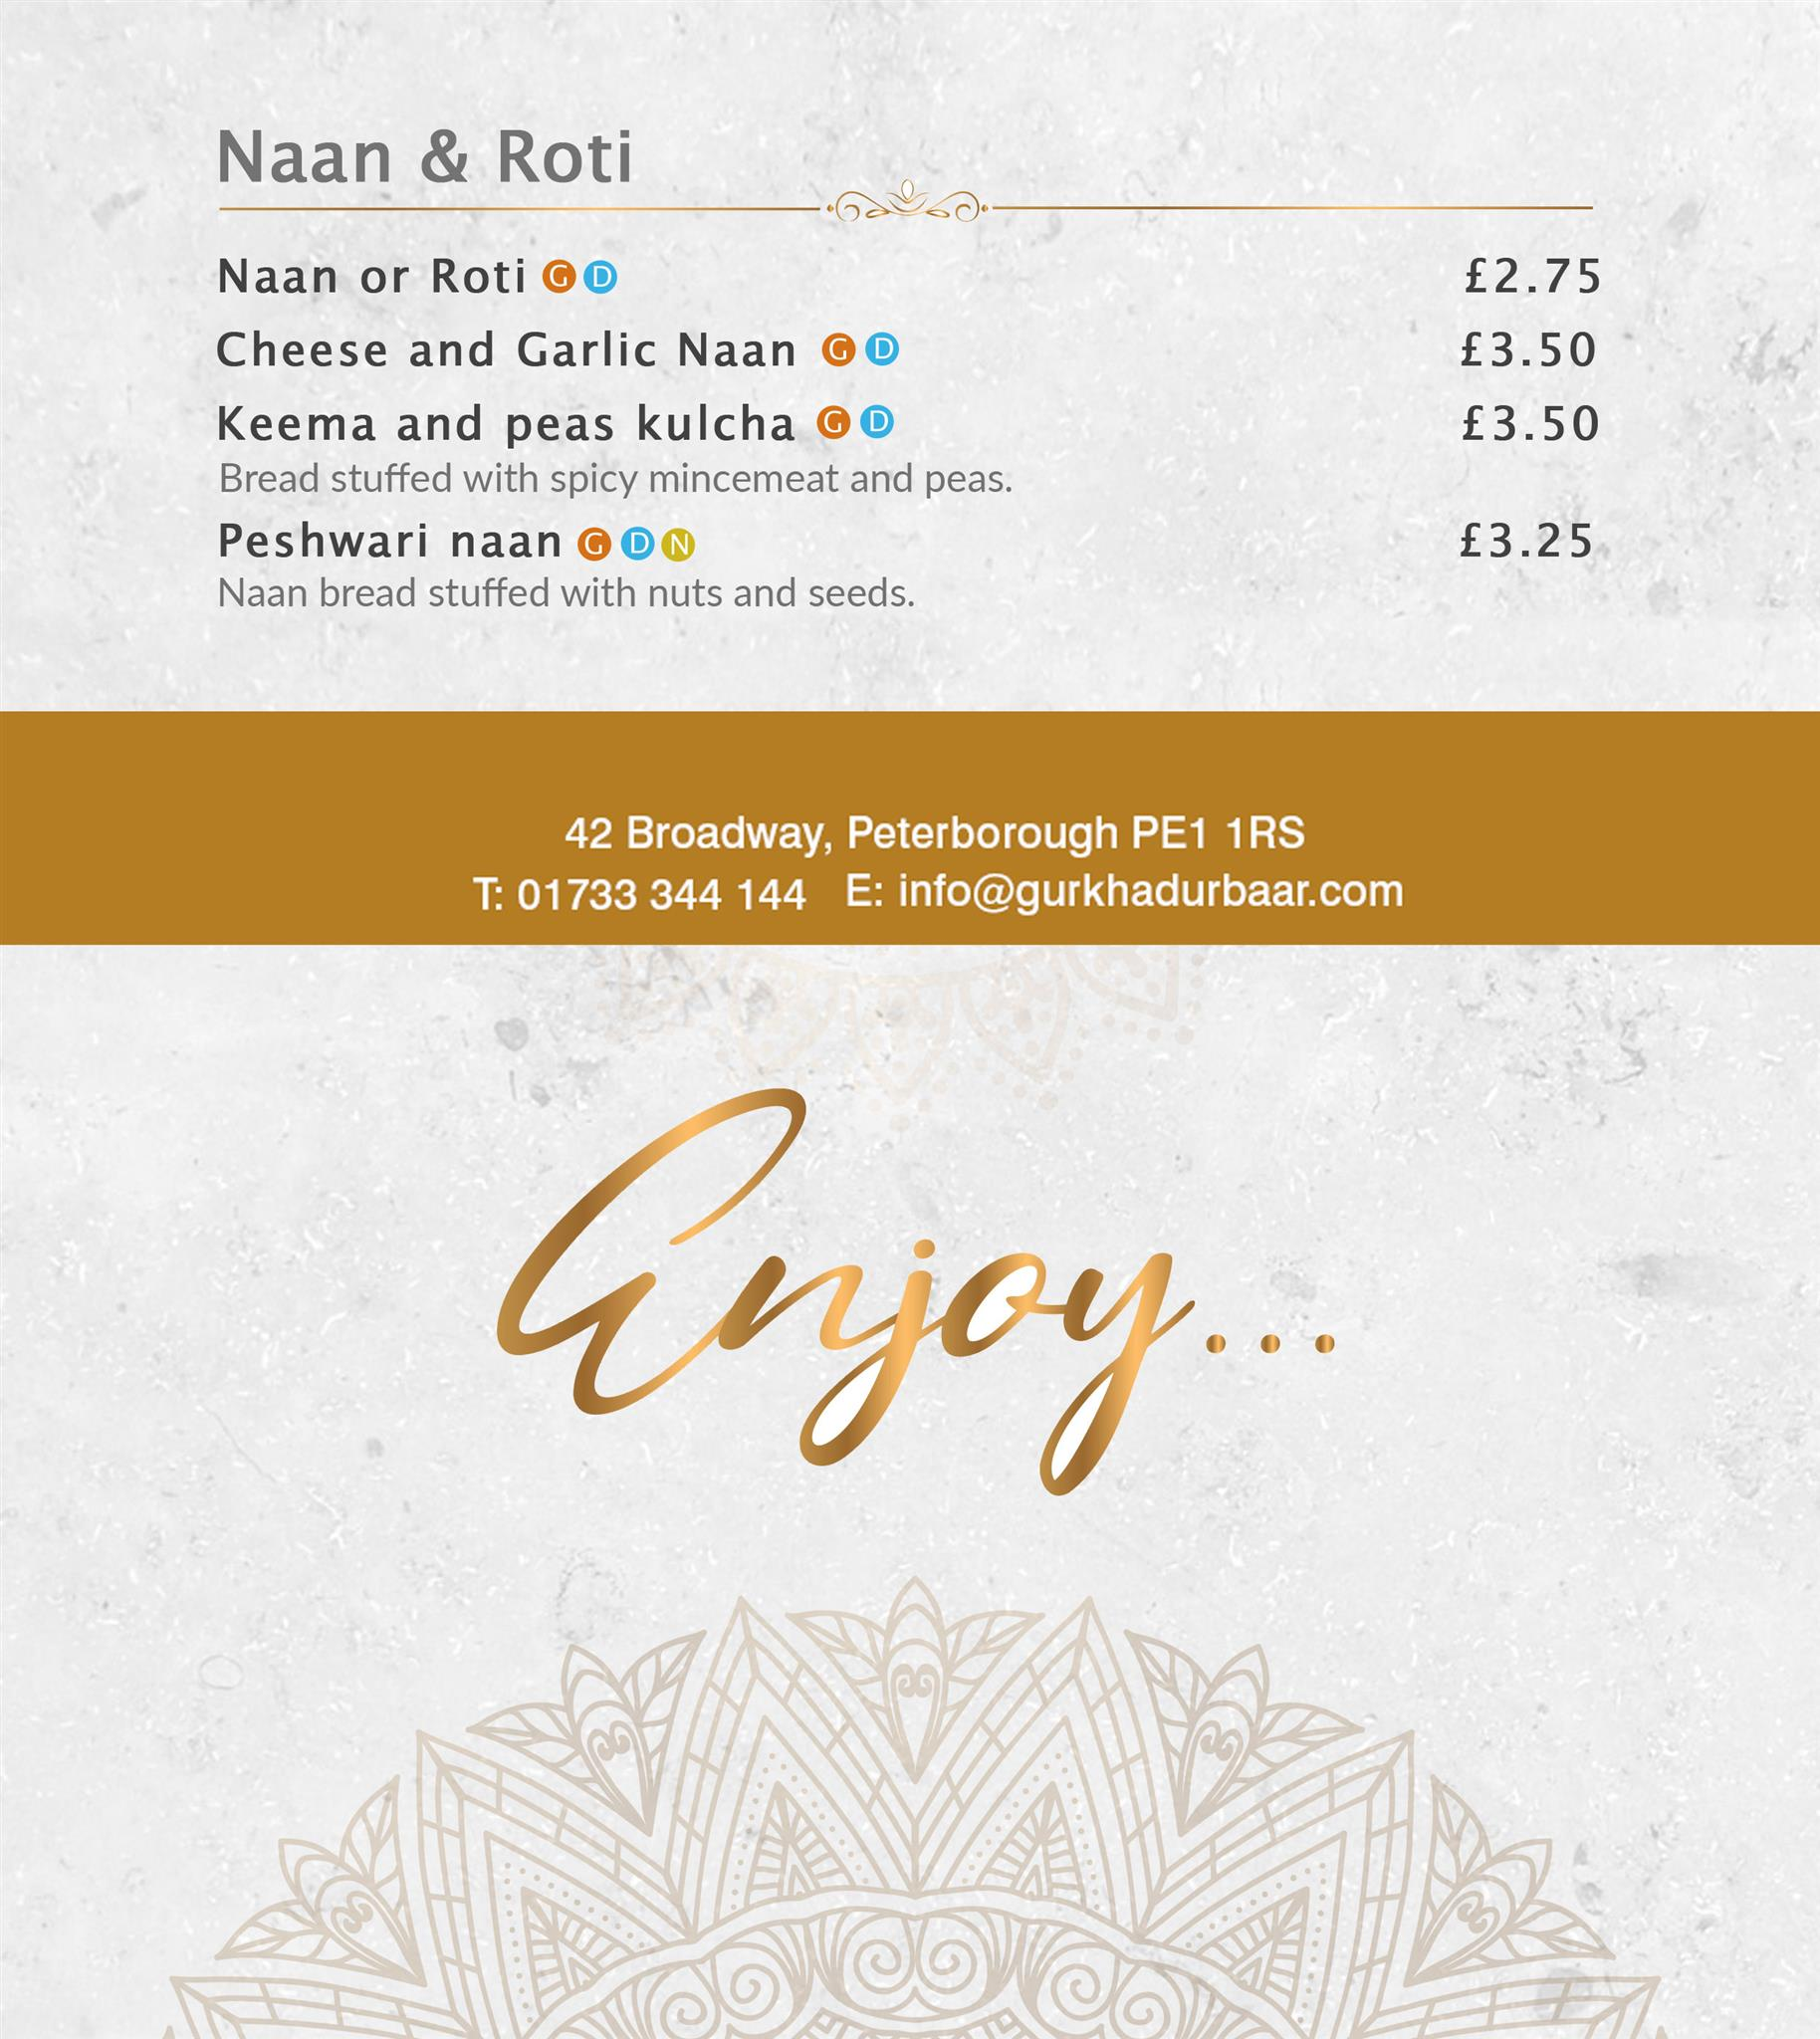 Best Indian restaurant menu